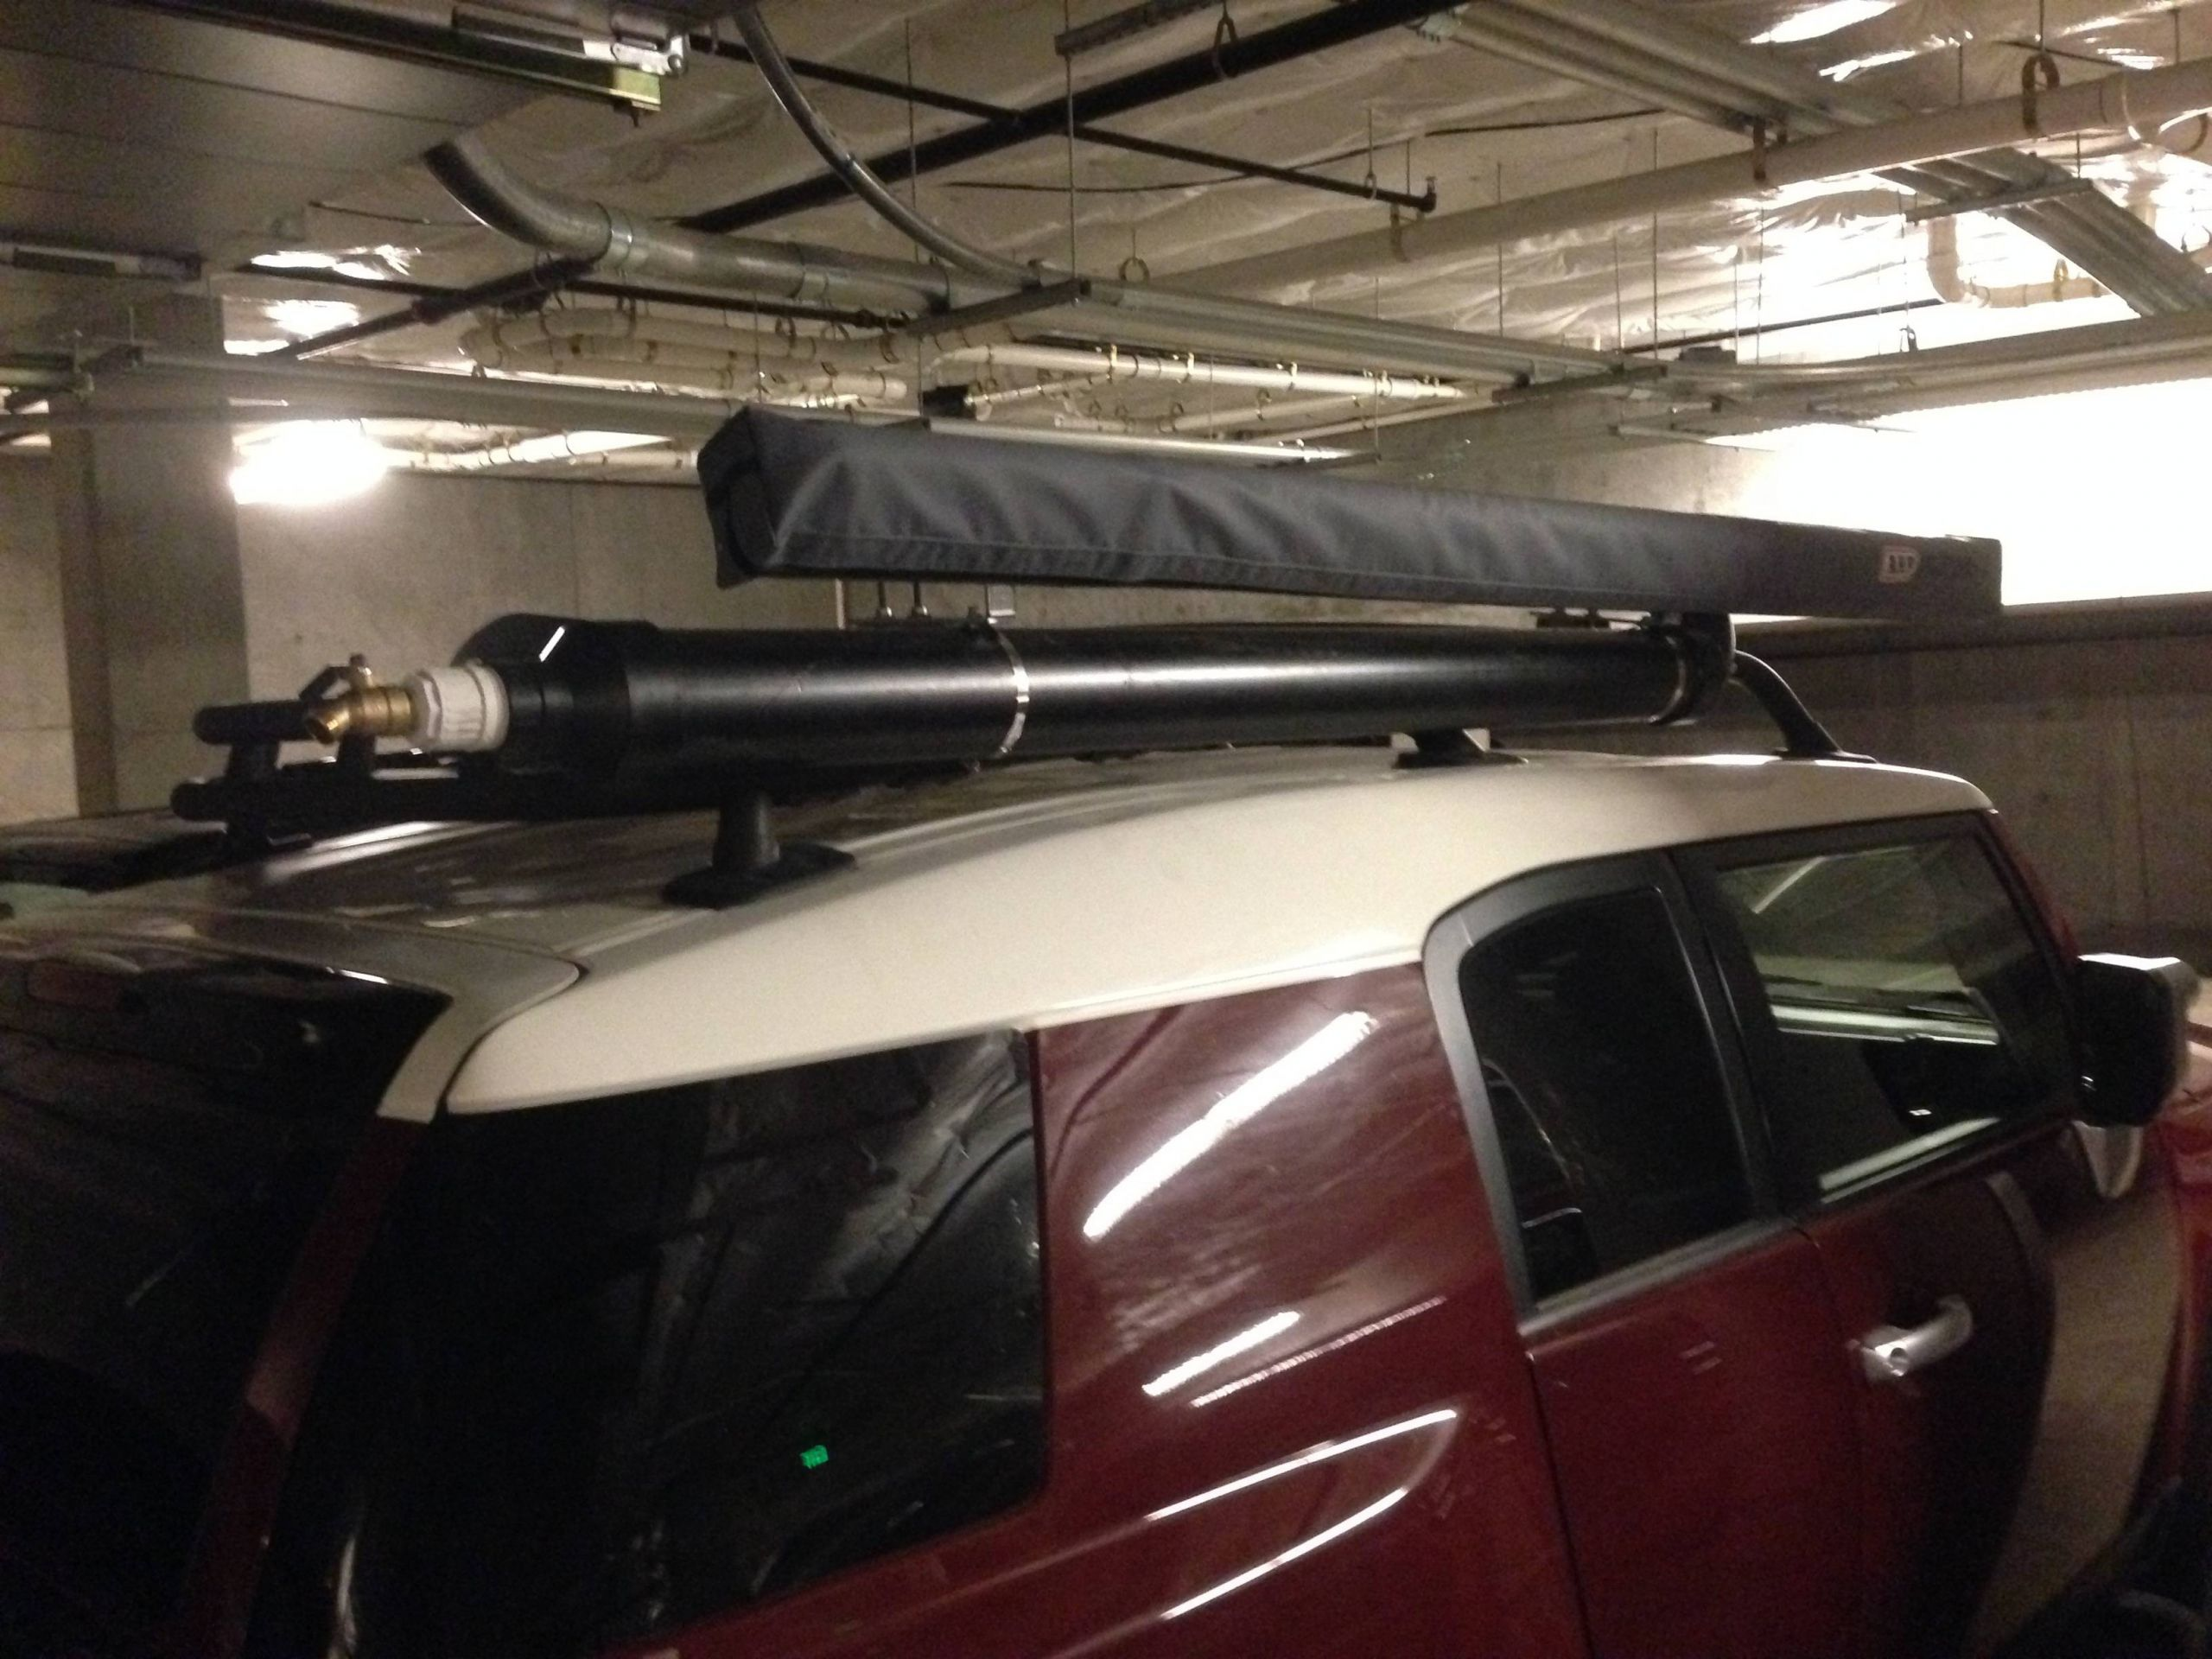 DIY Roof Rack Shower  DIY Roof Rack Shower Bracket System for Awning Toyota